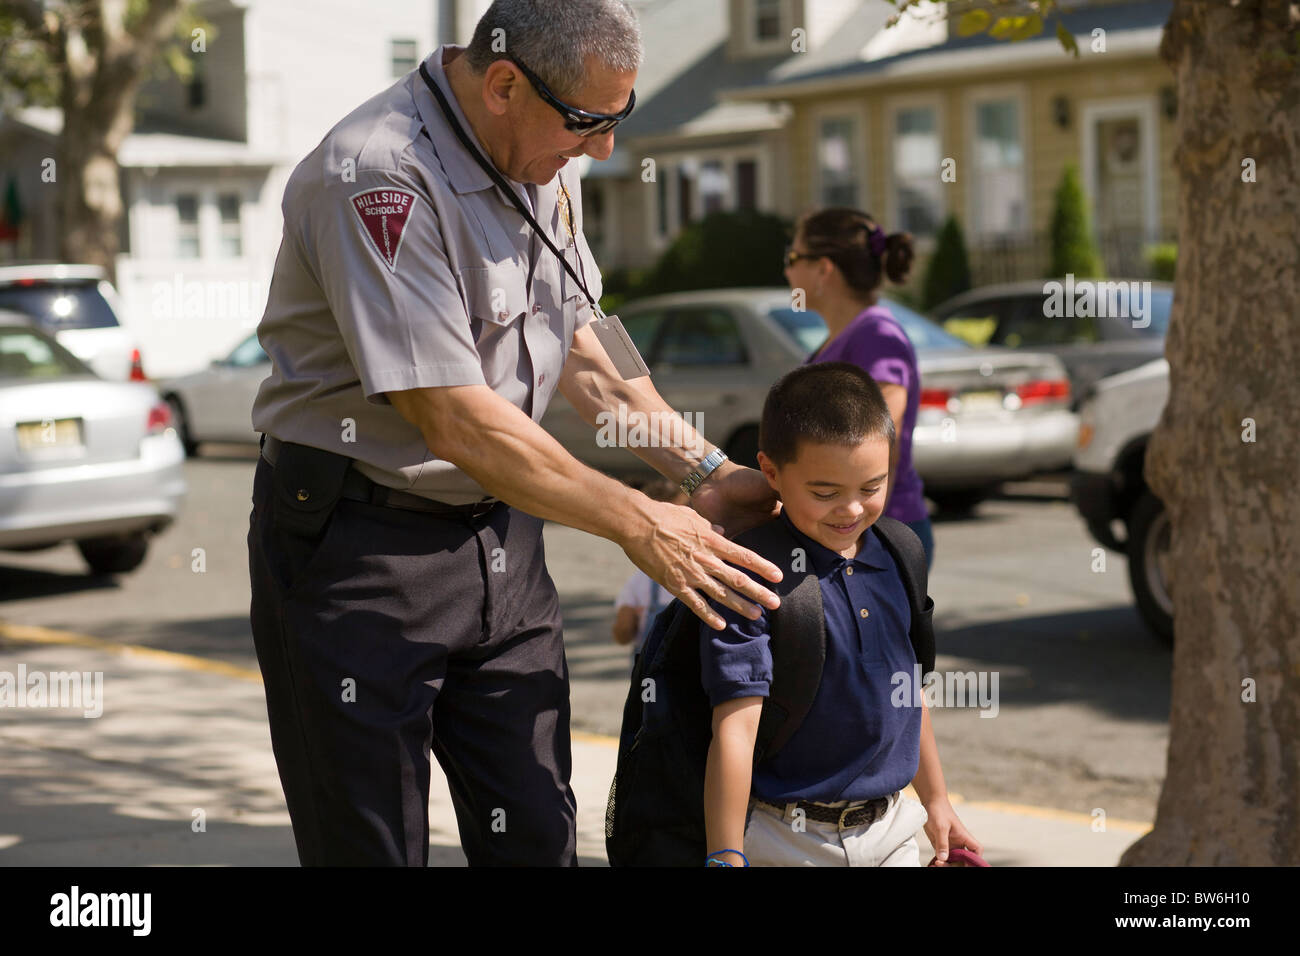 School security guard talking with a student after school - Stock Image